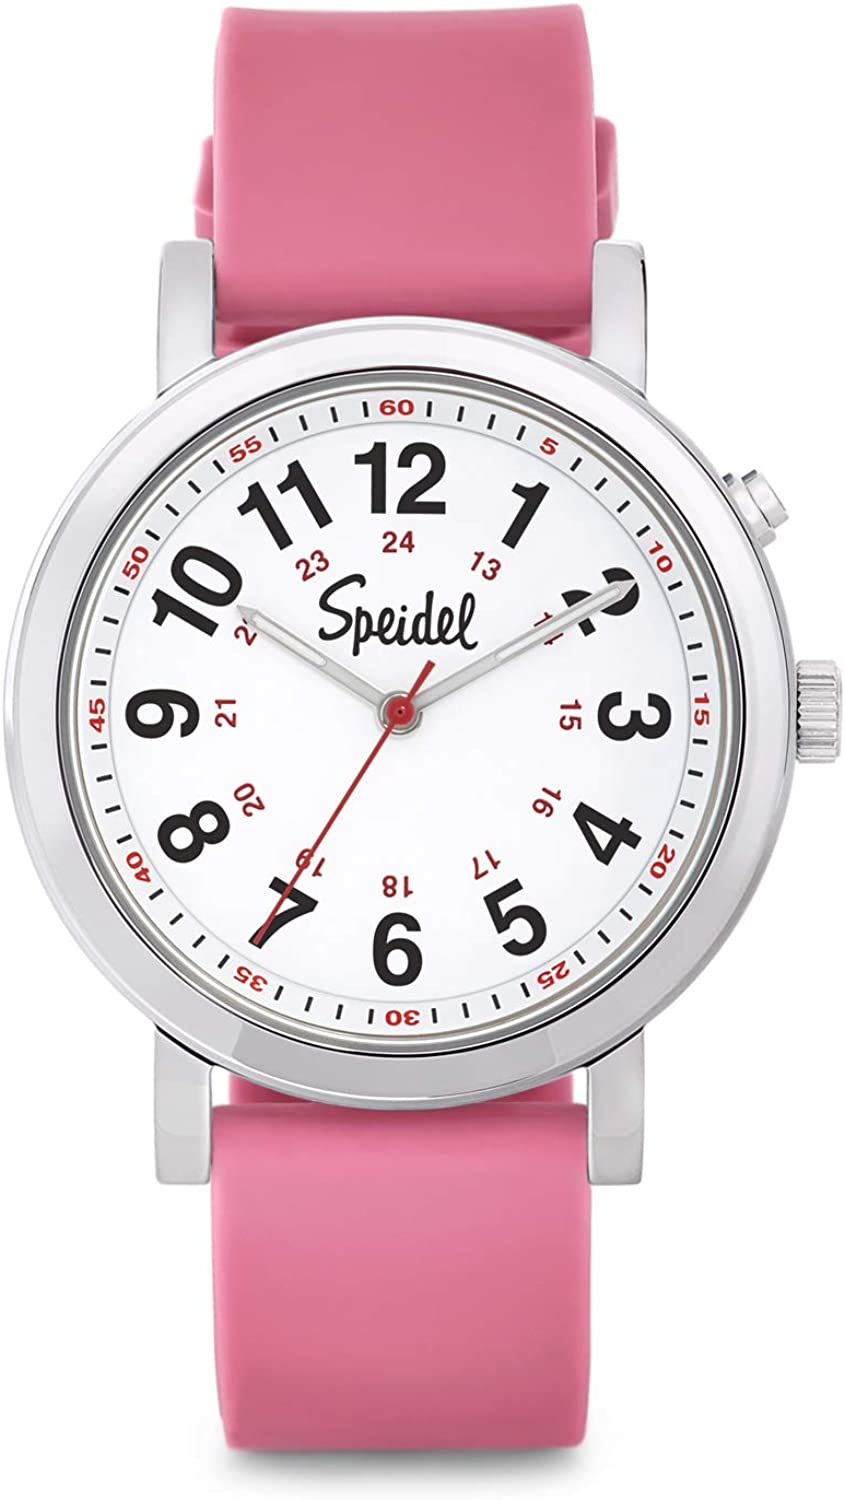 Speidel Medical Scrub Glow Watch - Silicone Band, 24 Hour Marks, Second Hand, Lighted Easy-Read Face